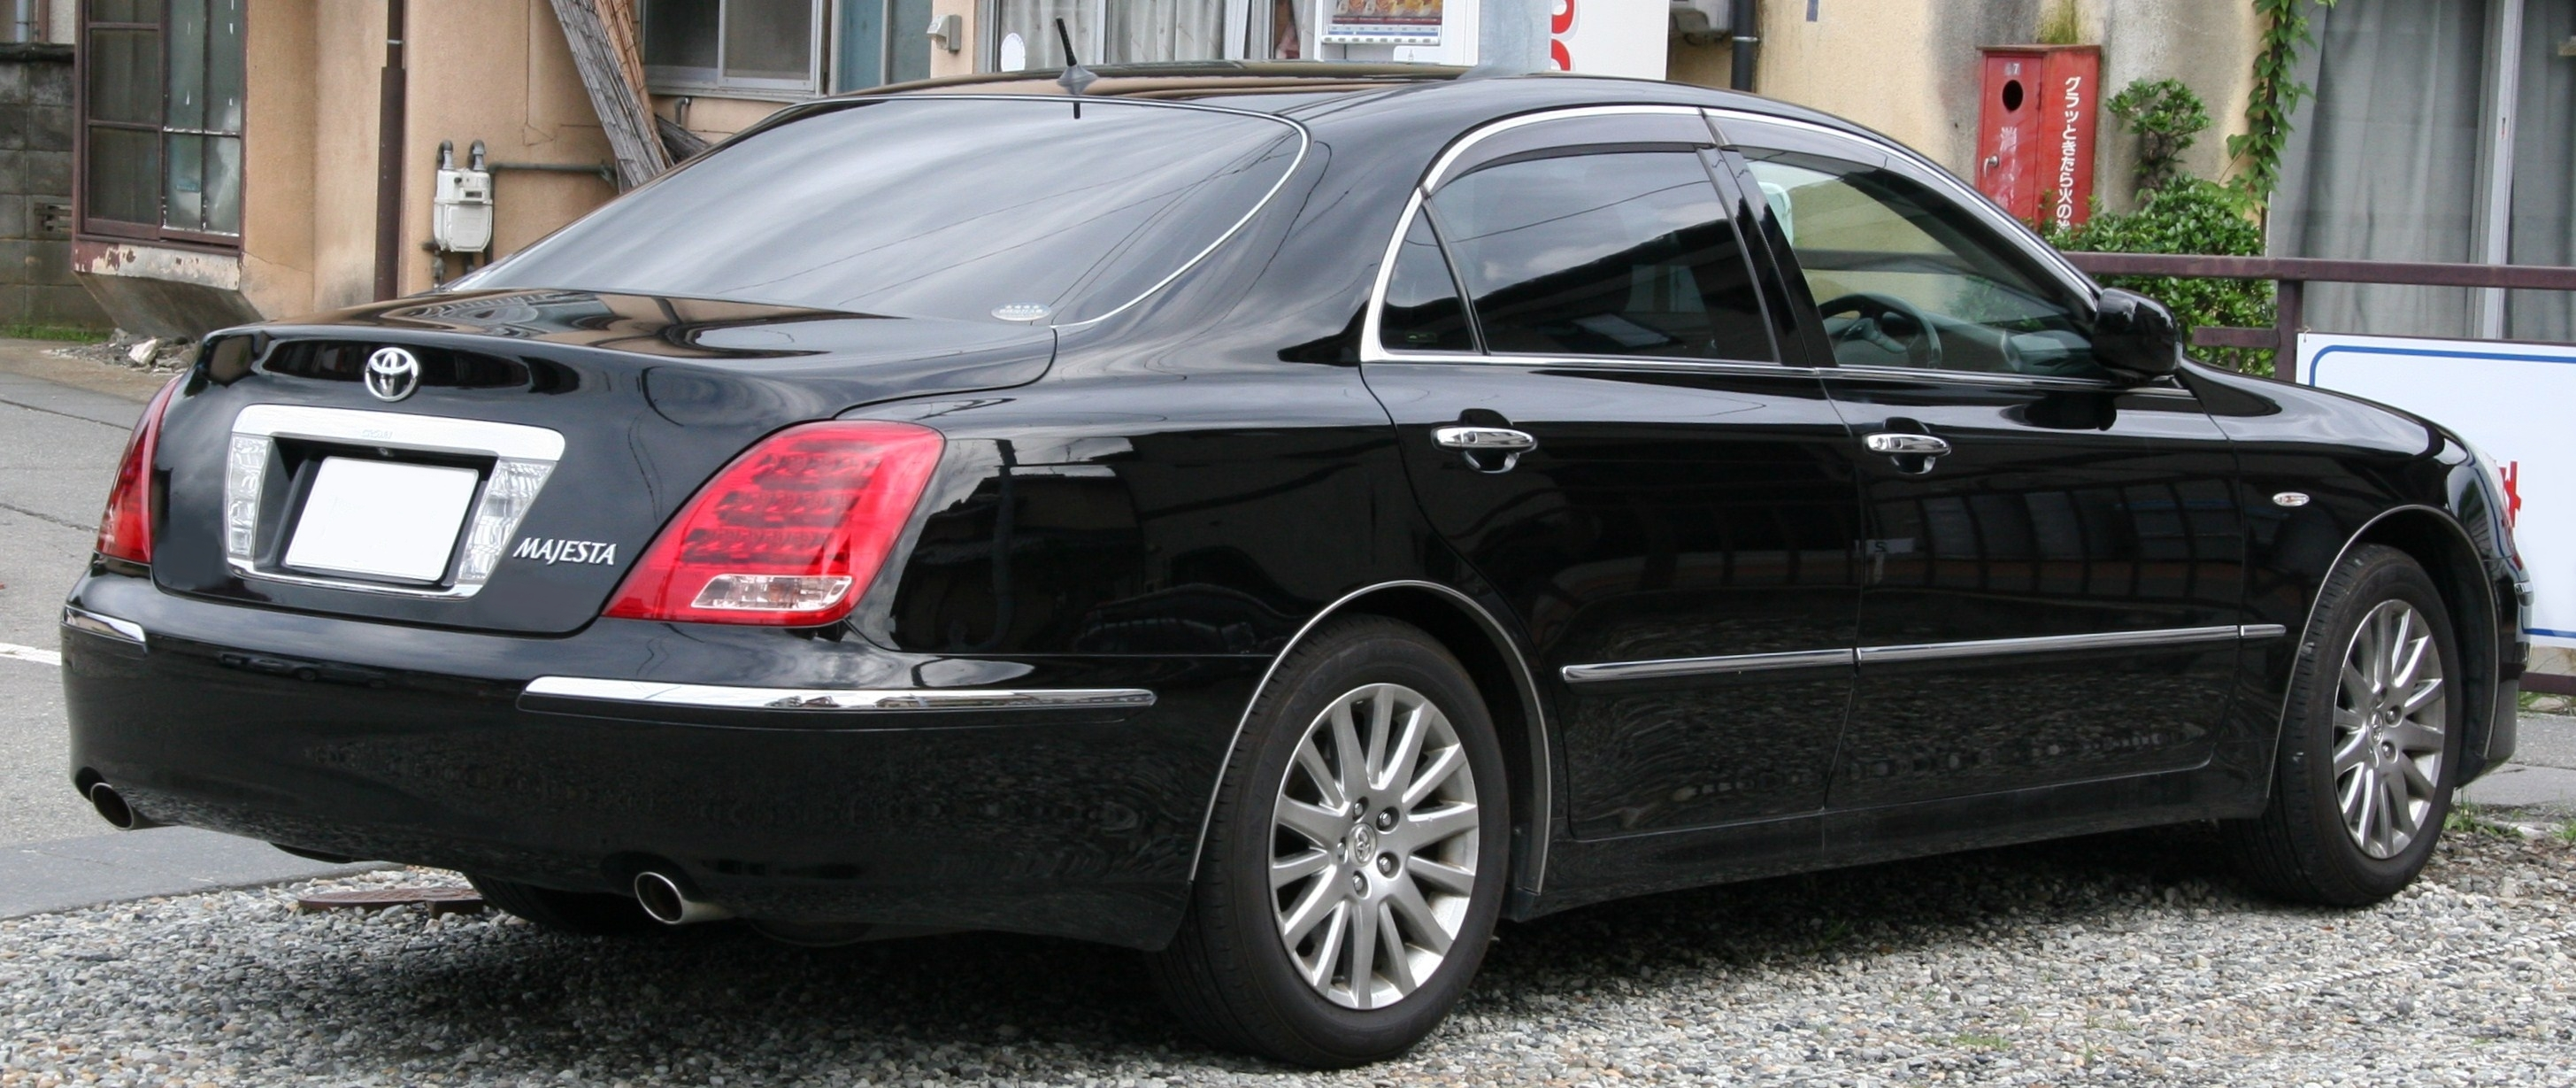 File Toyota Crown Majesta S180 Rear Jpg Wikimedia Commons